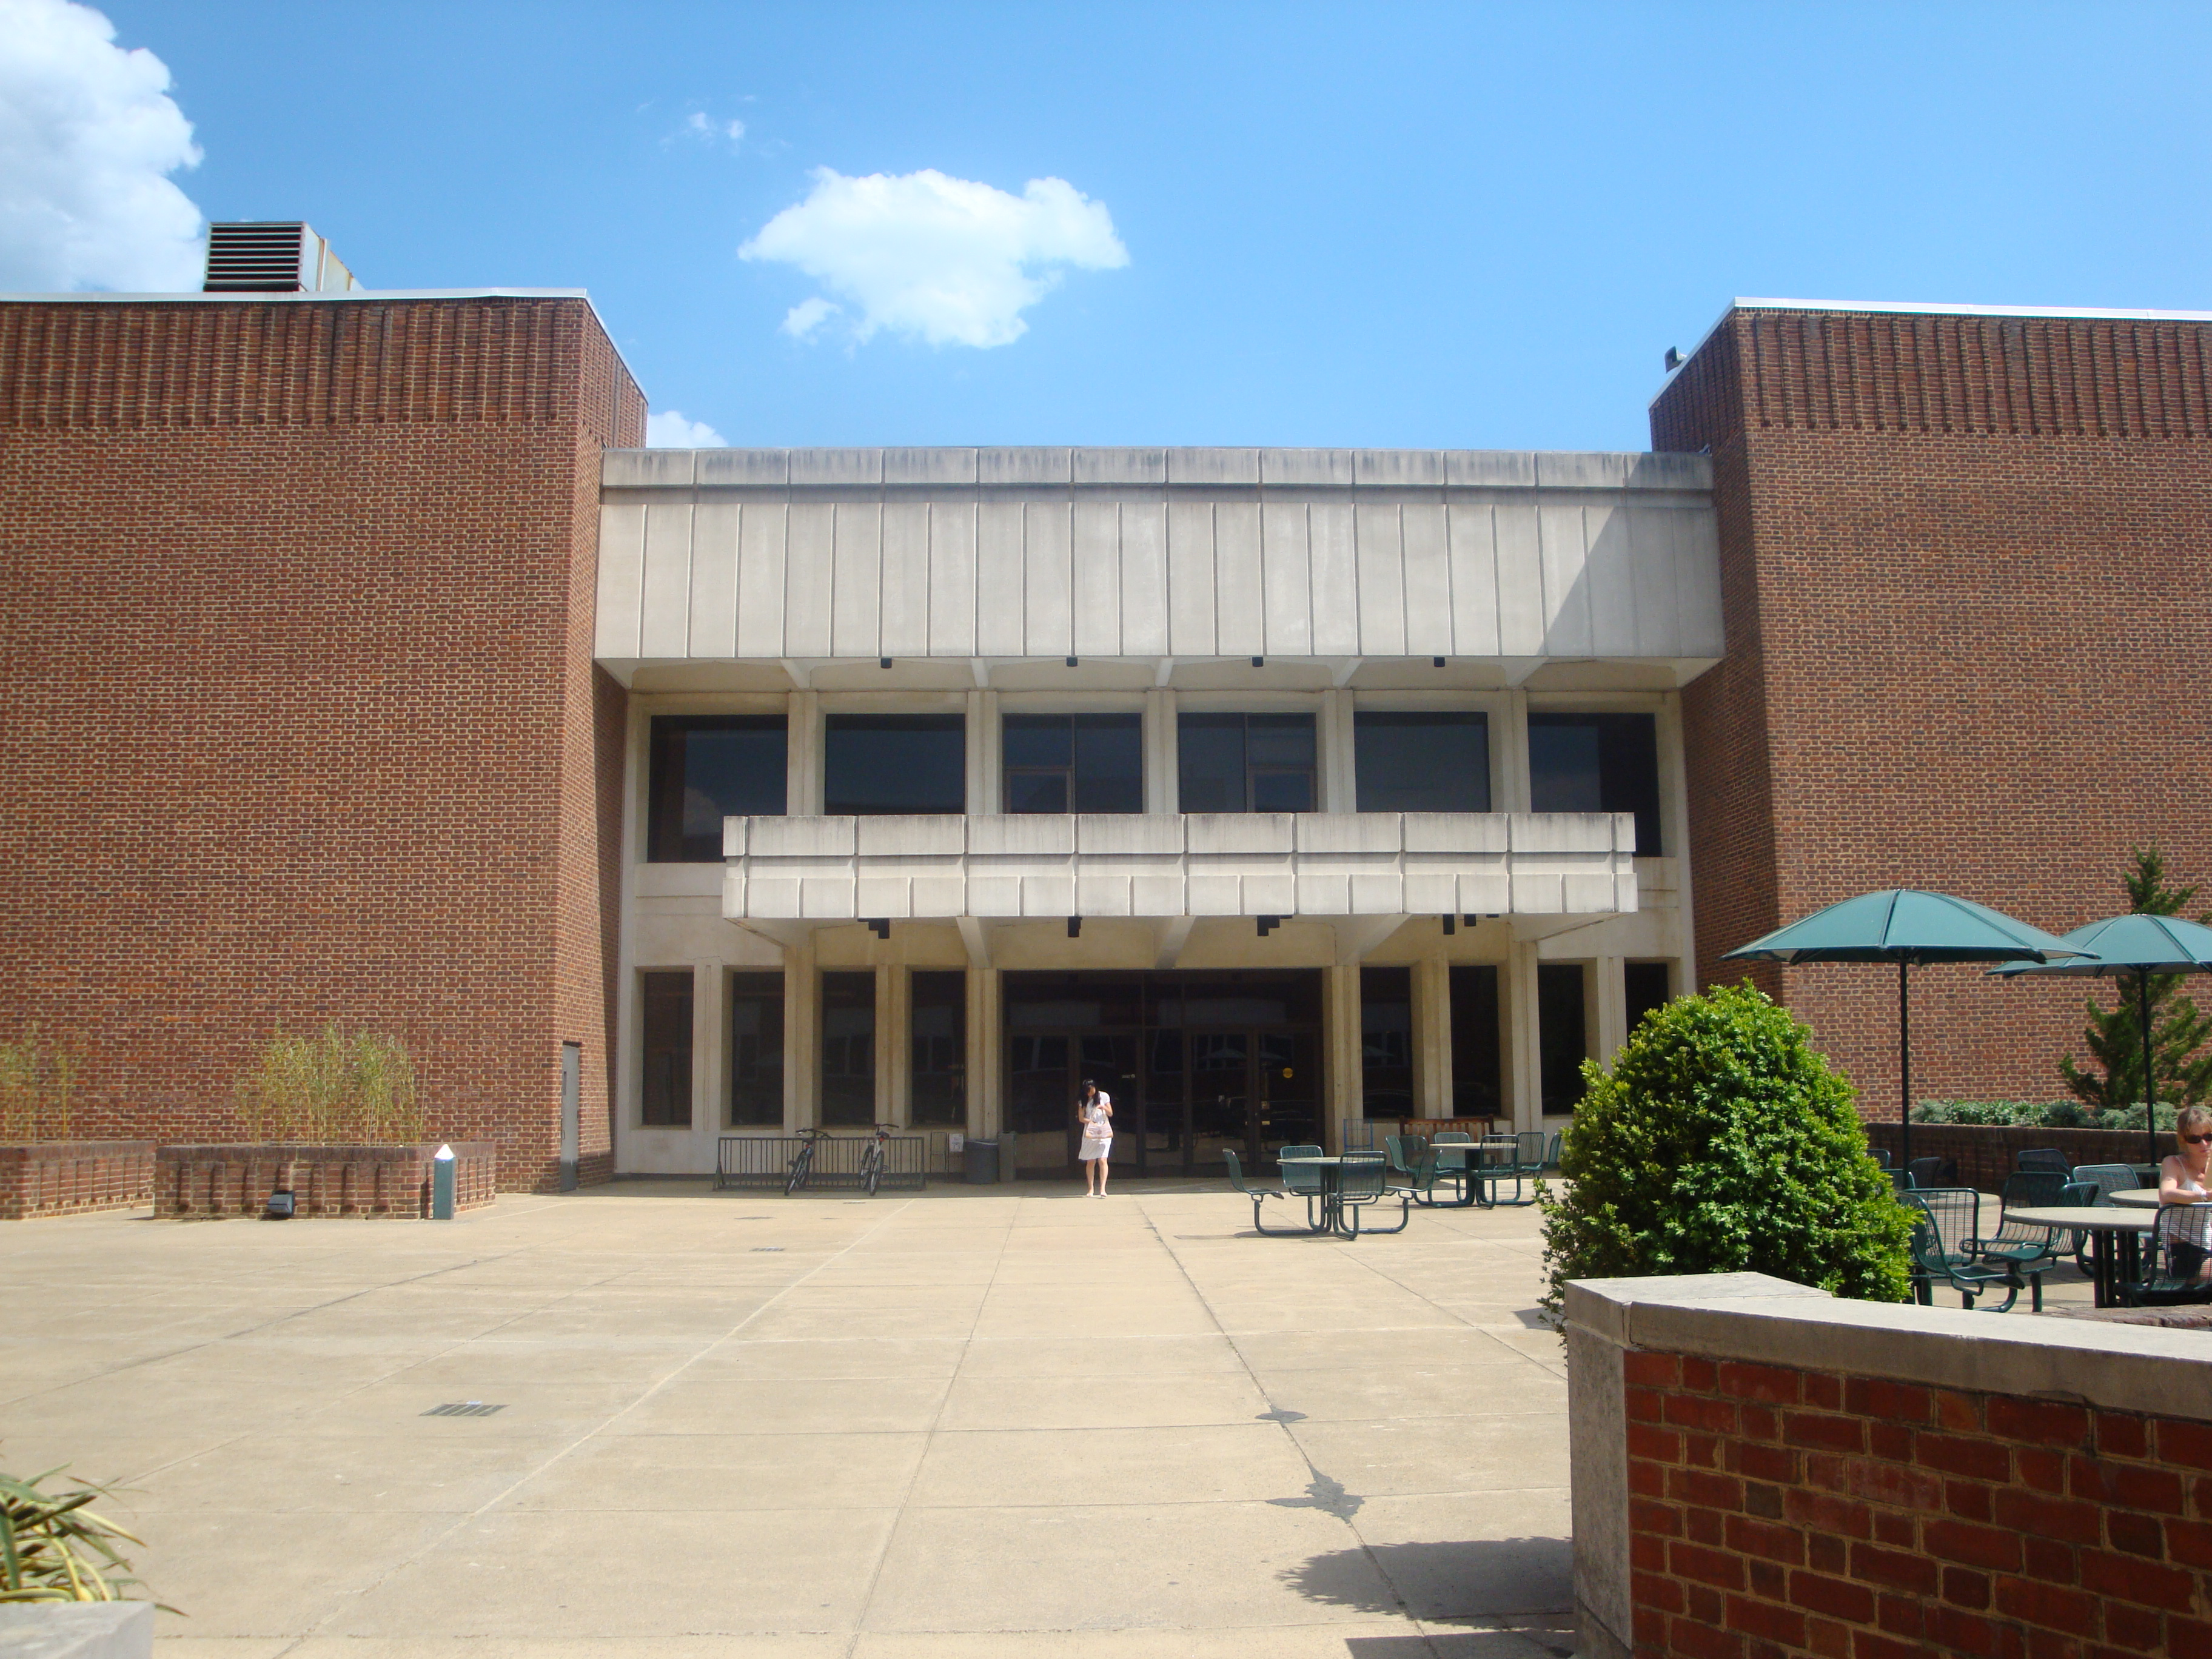 This is the Chemistry Building at UVA